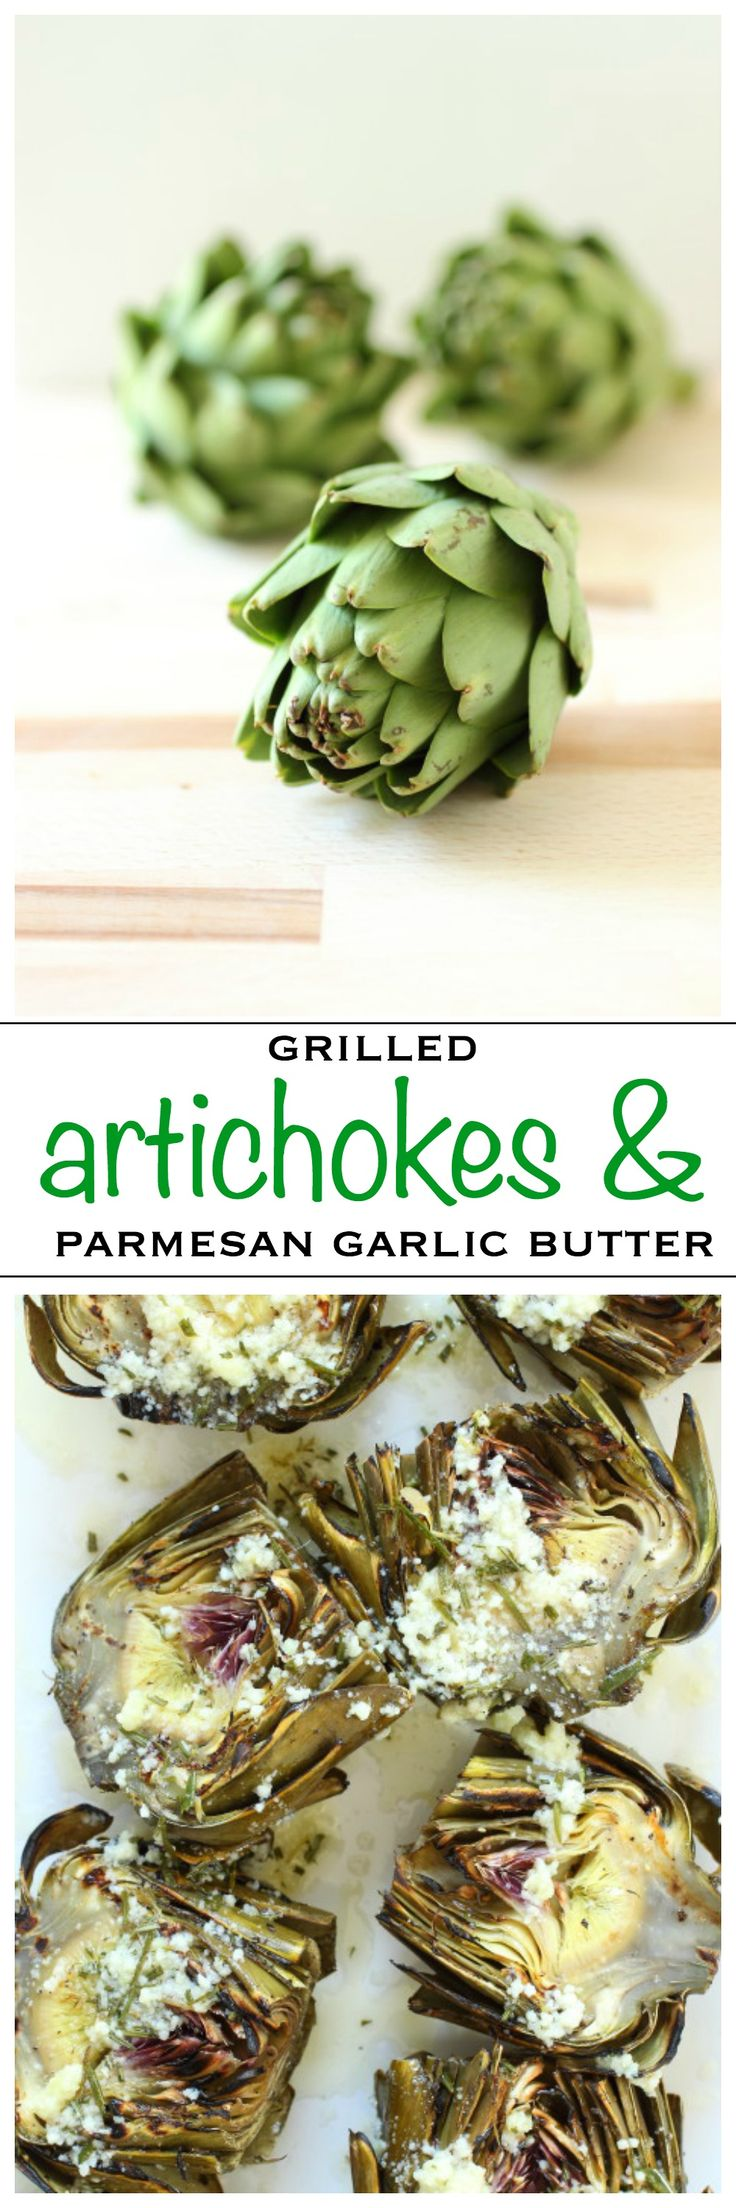 Grilled artichokes covered in a Parmesan cheese and garlic butter | Foodness Gracious